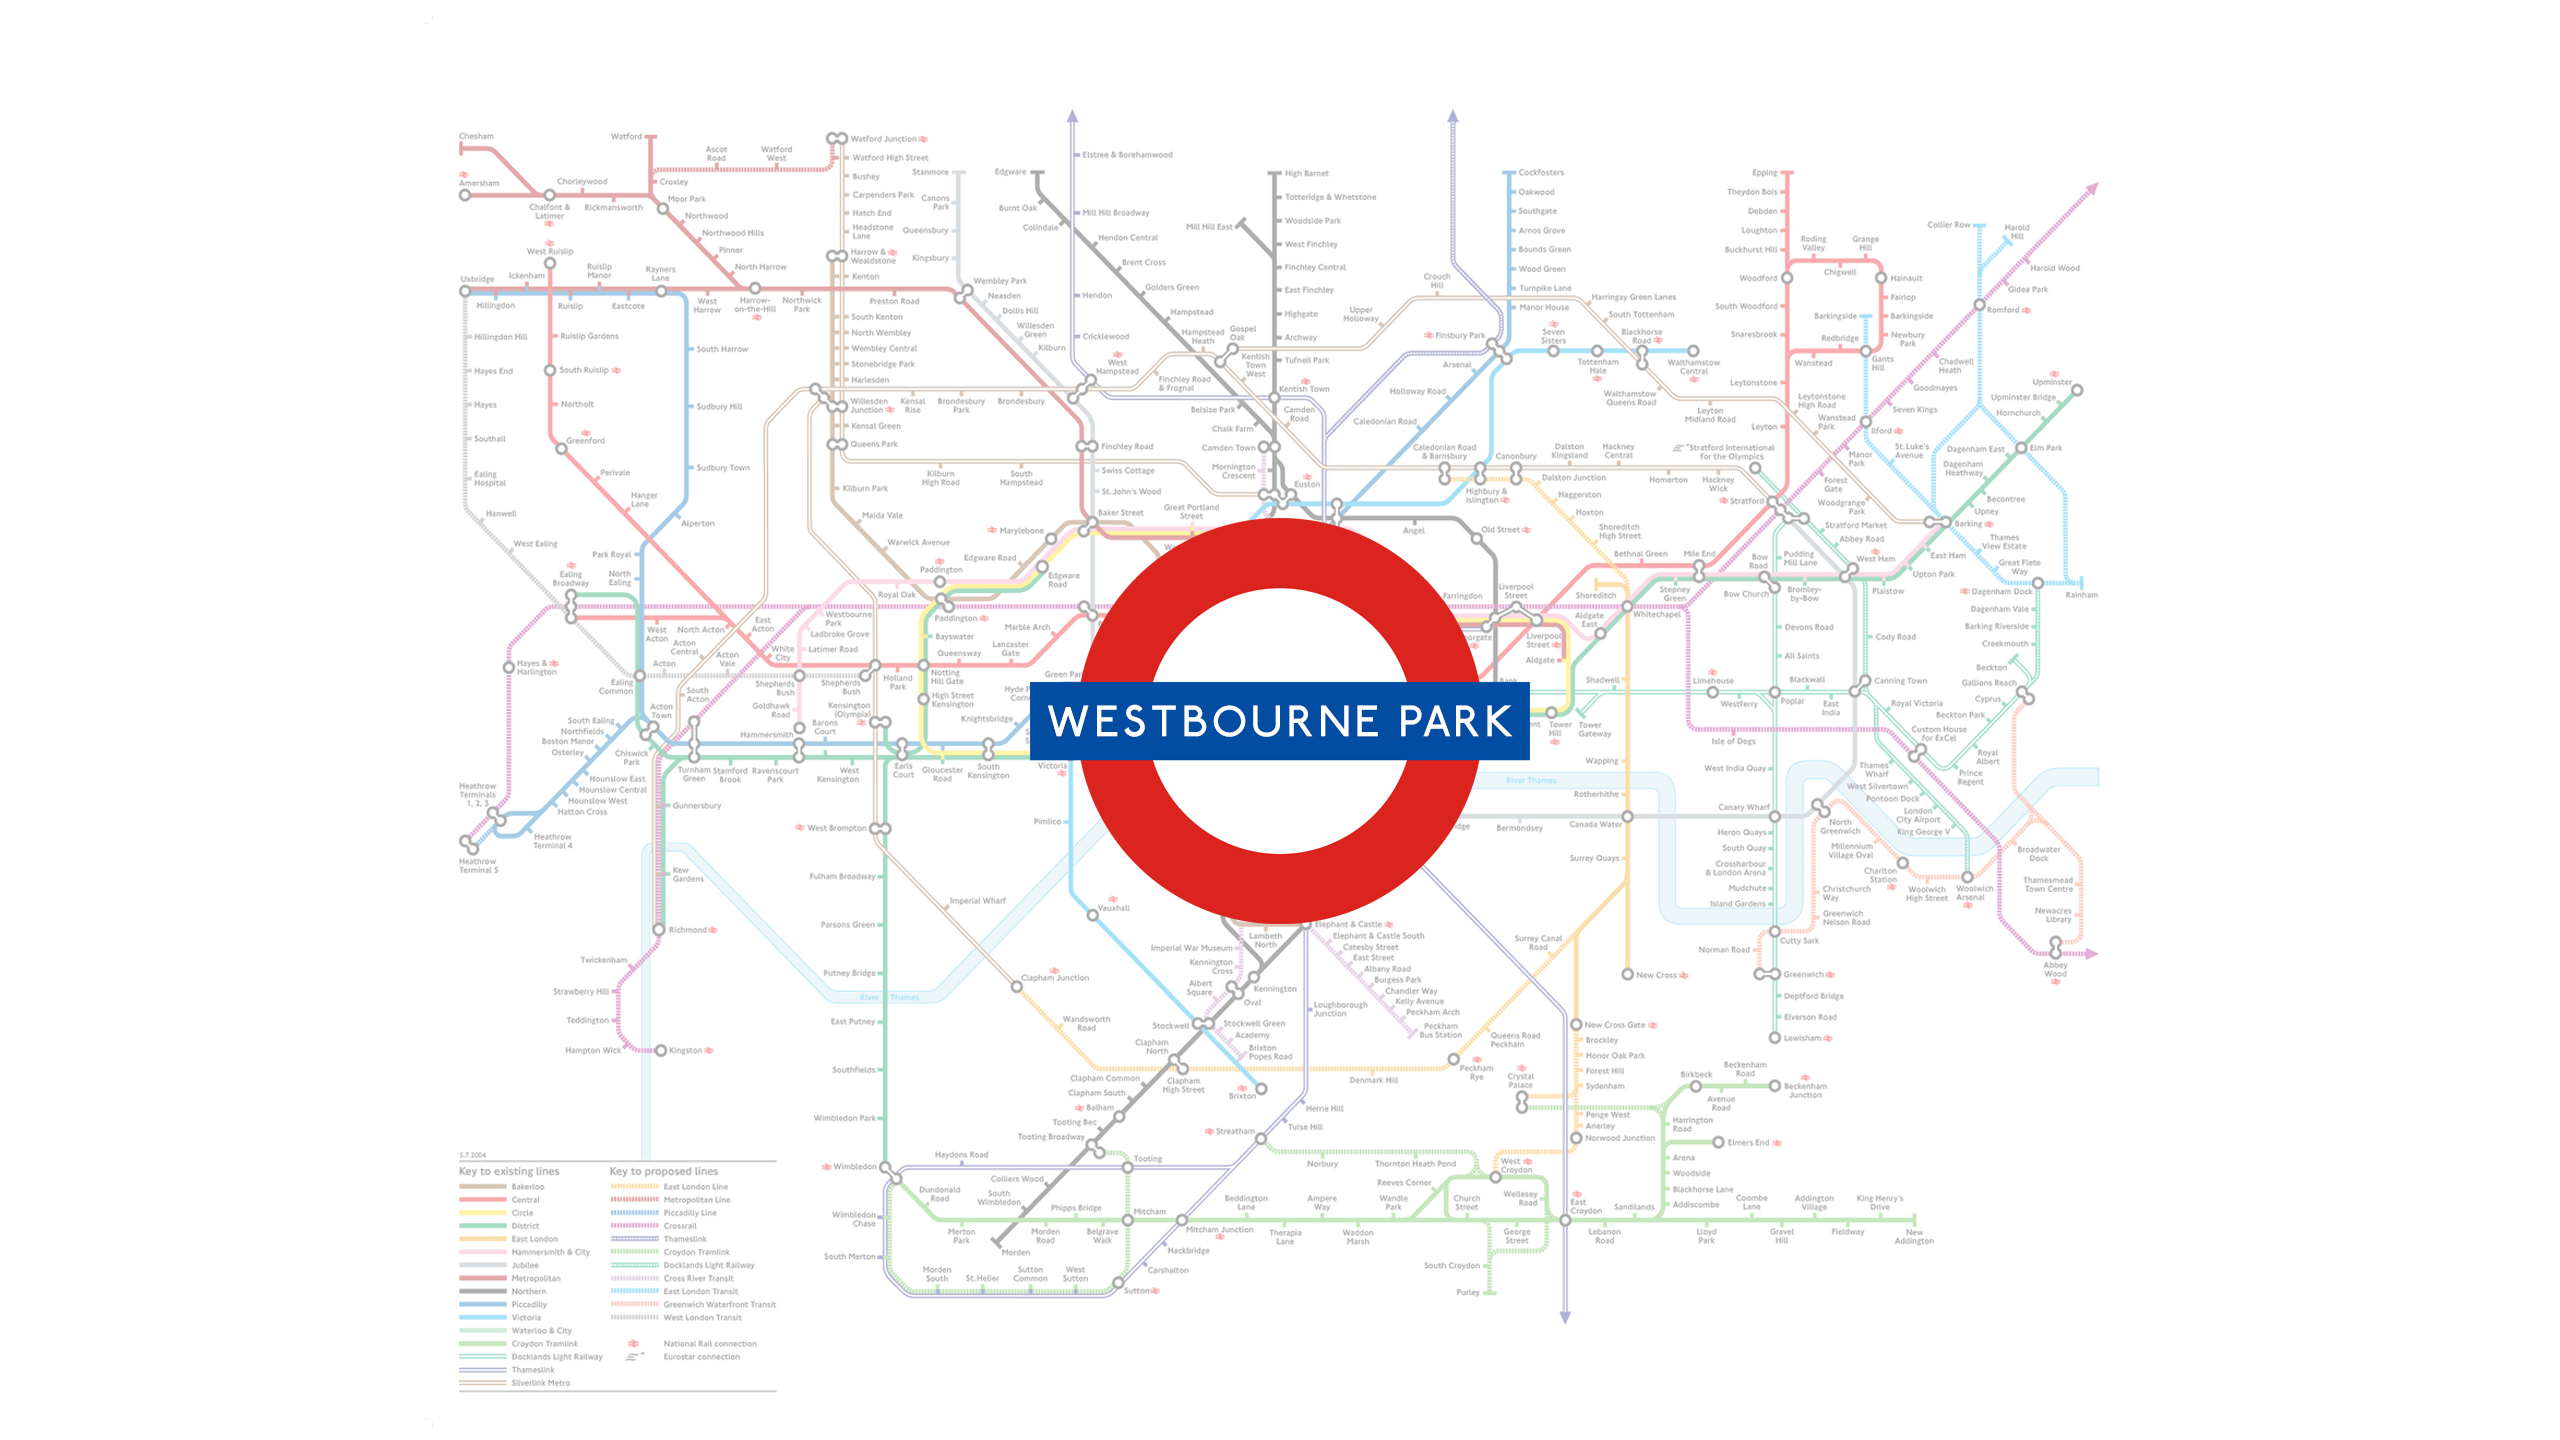 Westbourne Park (Map)